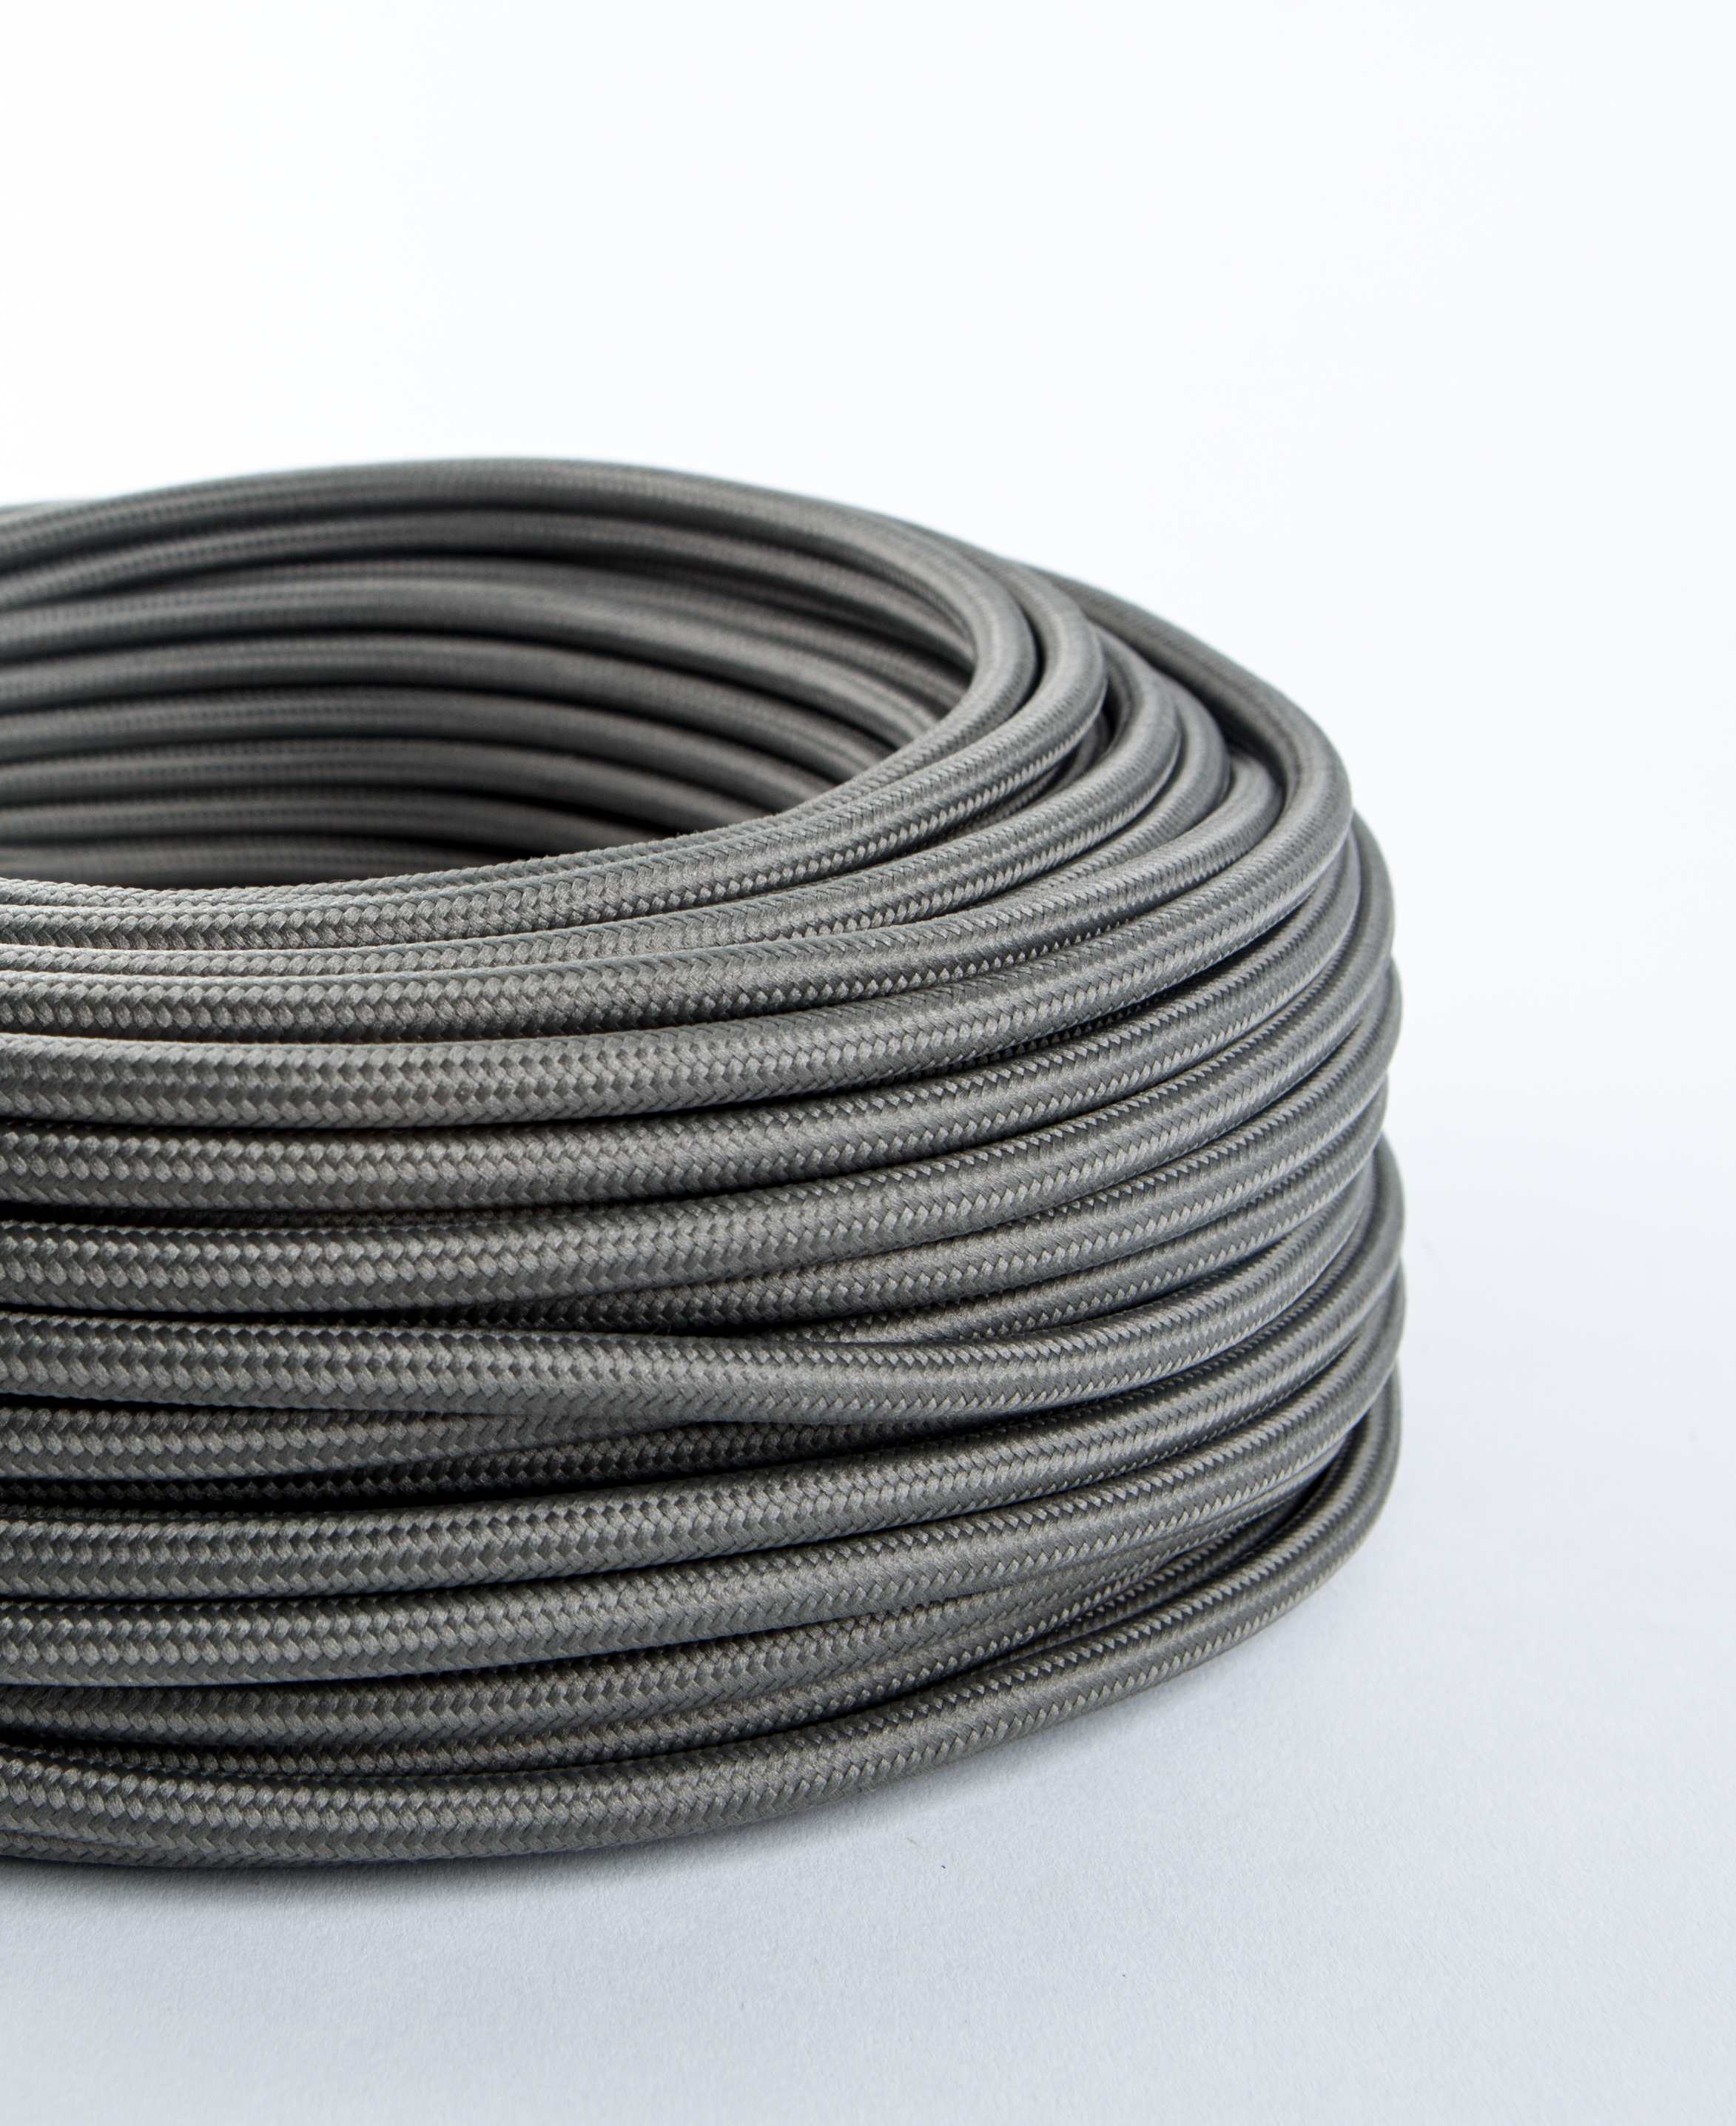 Dark Steel Grey Fabric Cable for Lighting 8 Amp 3 Core CE Certified